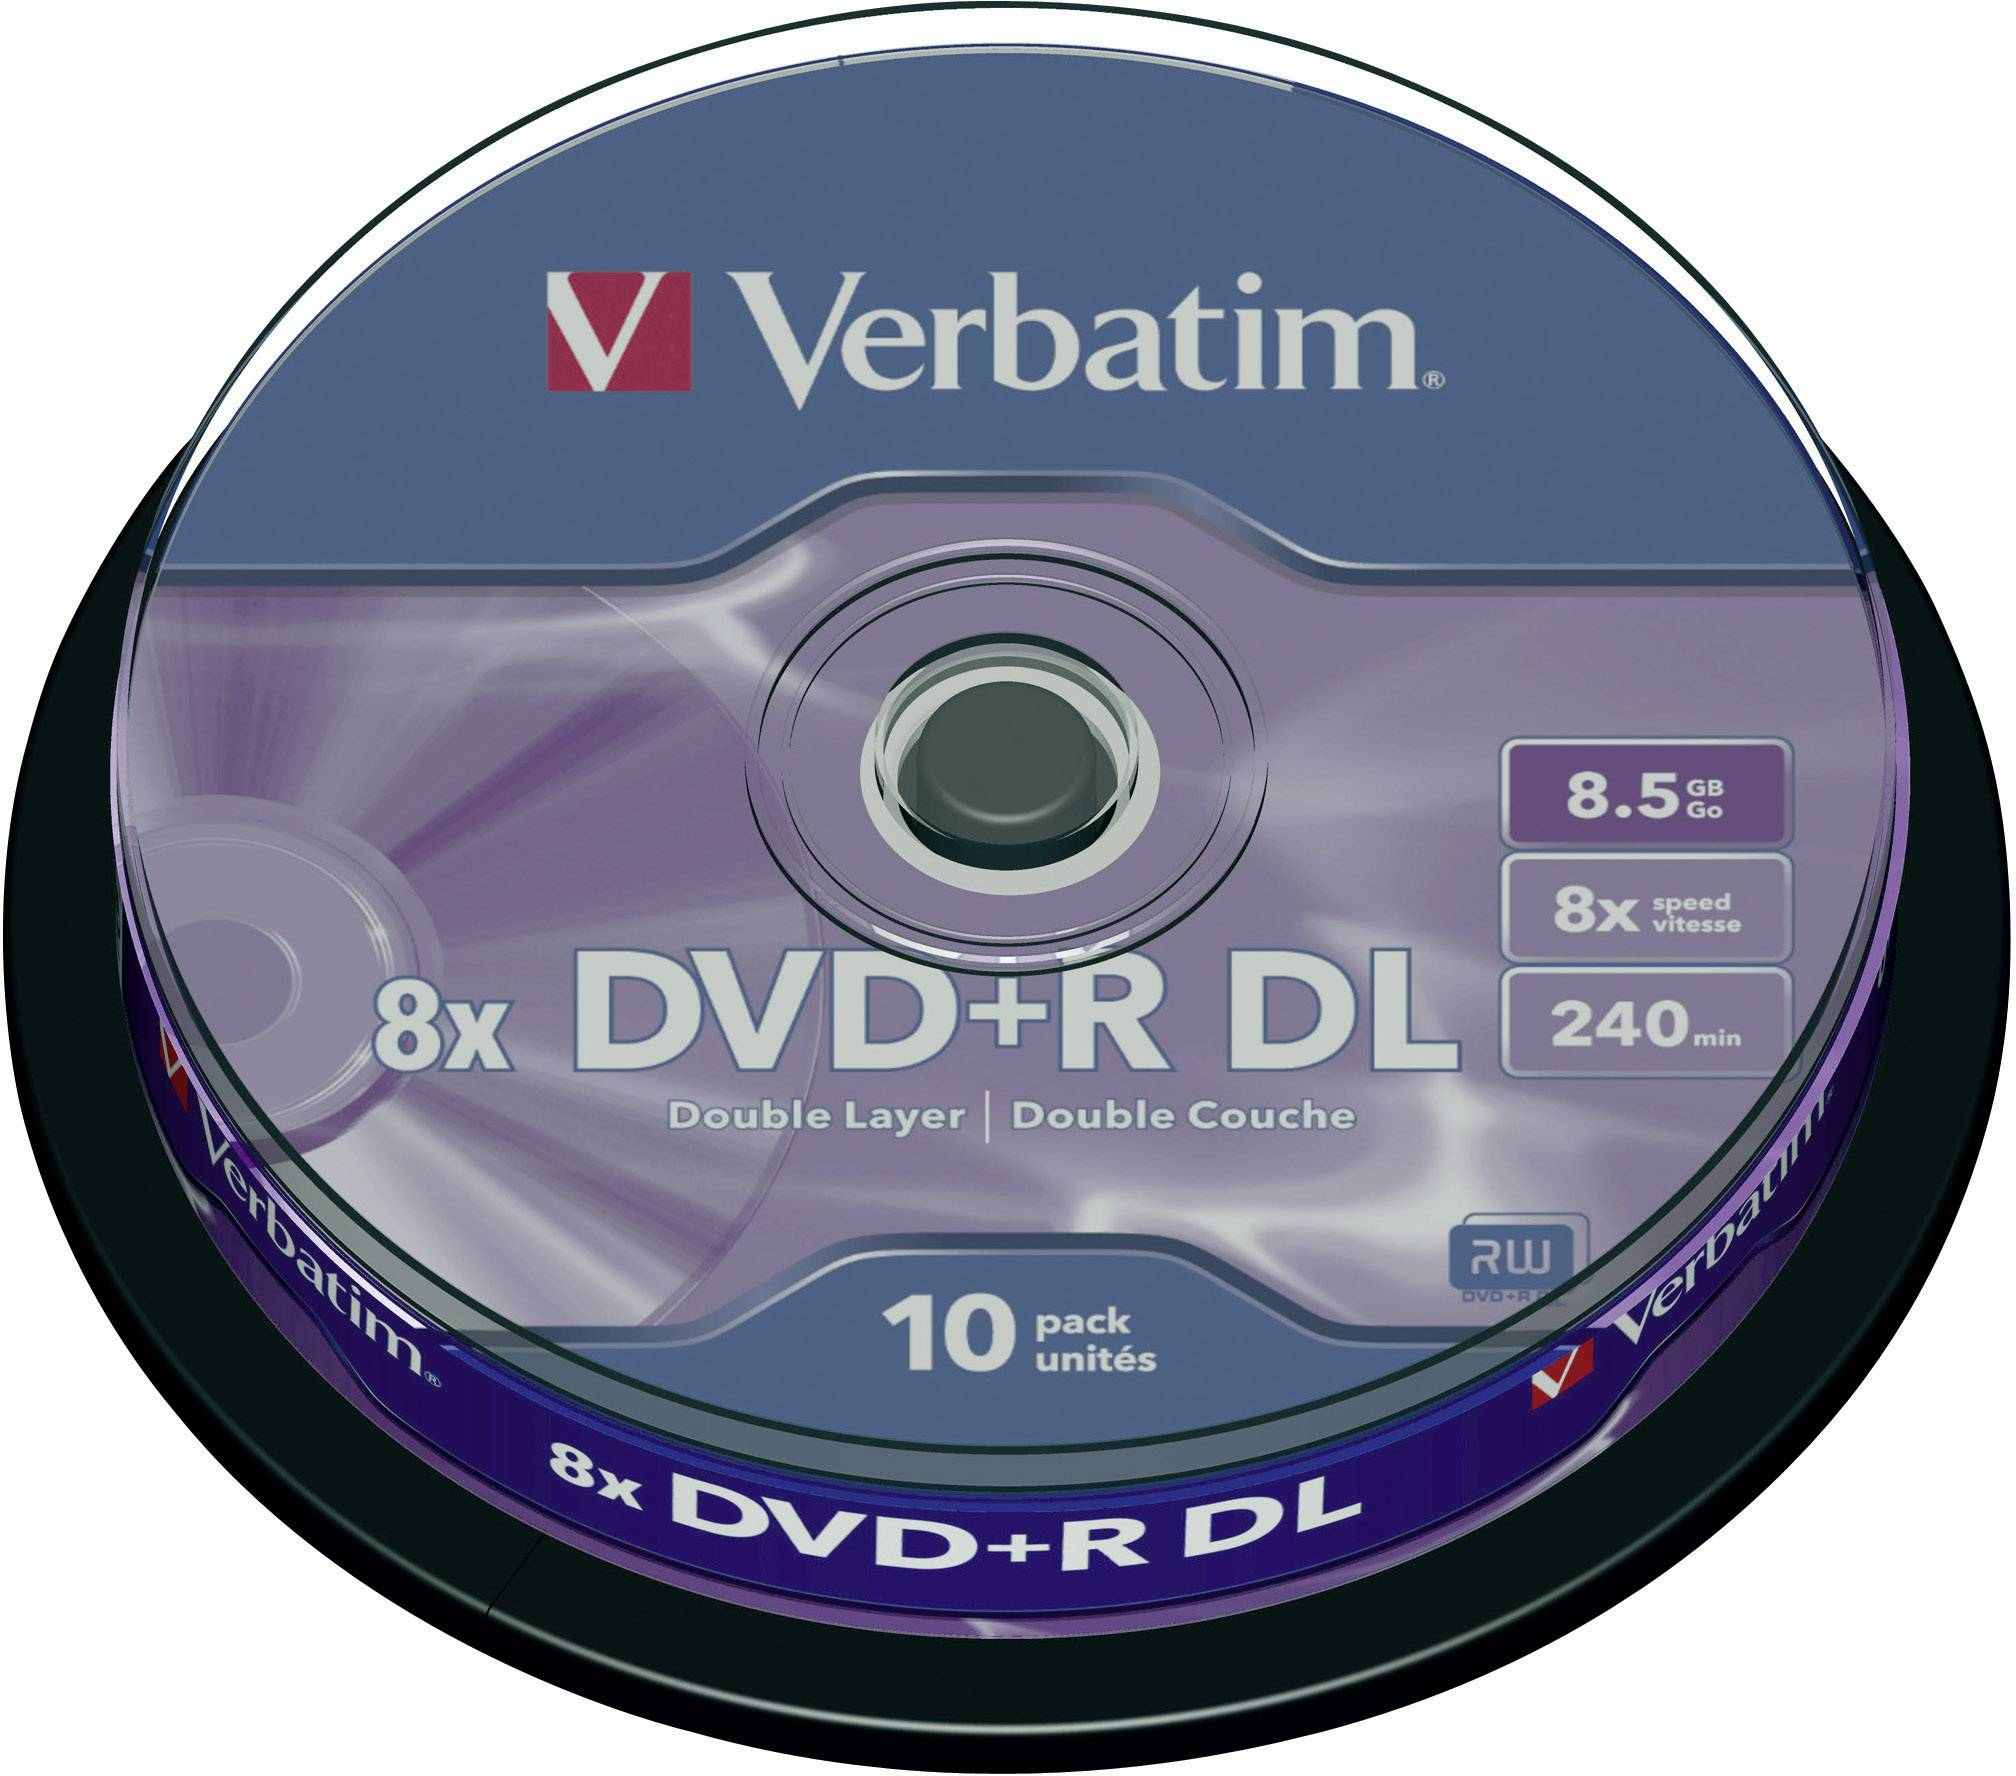 Verbatim DVD+R DL 8,5GB 8X 10 ks cake box